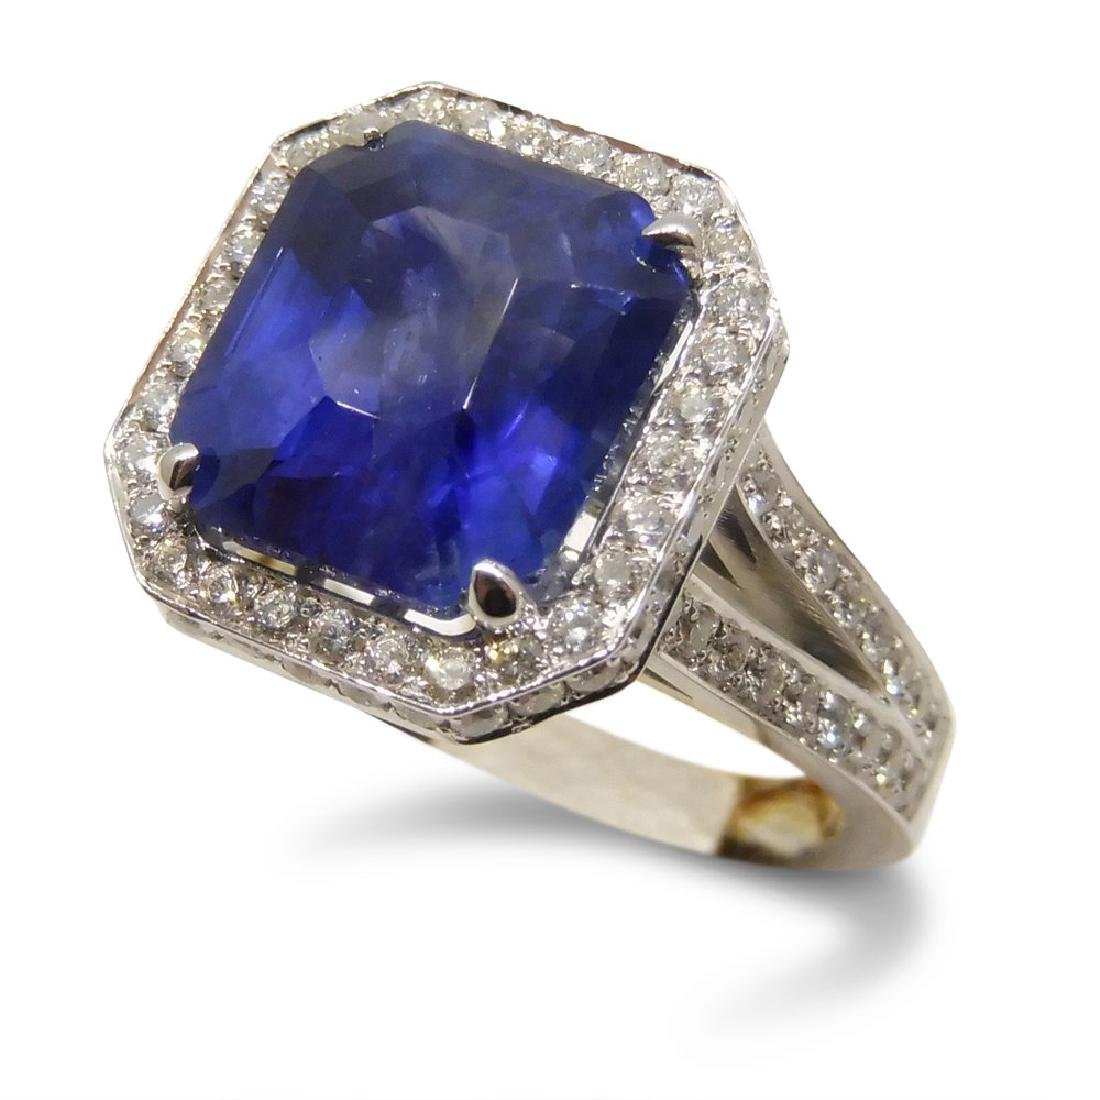 18K White Gold Unheated Sapphire Ring, 5.75ctw - 2